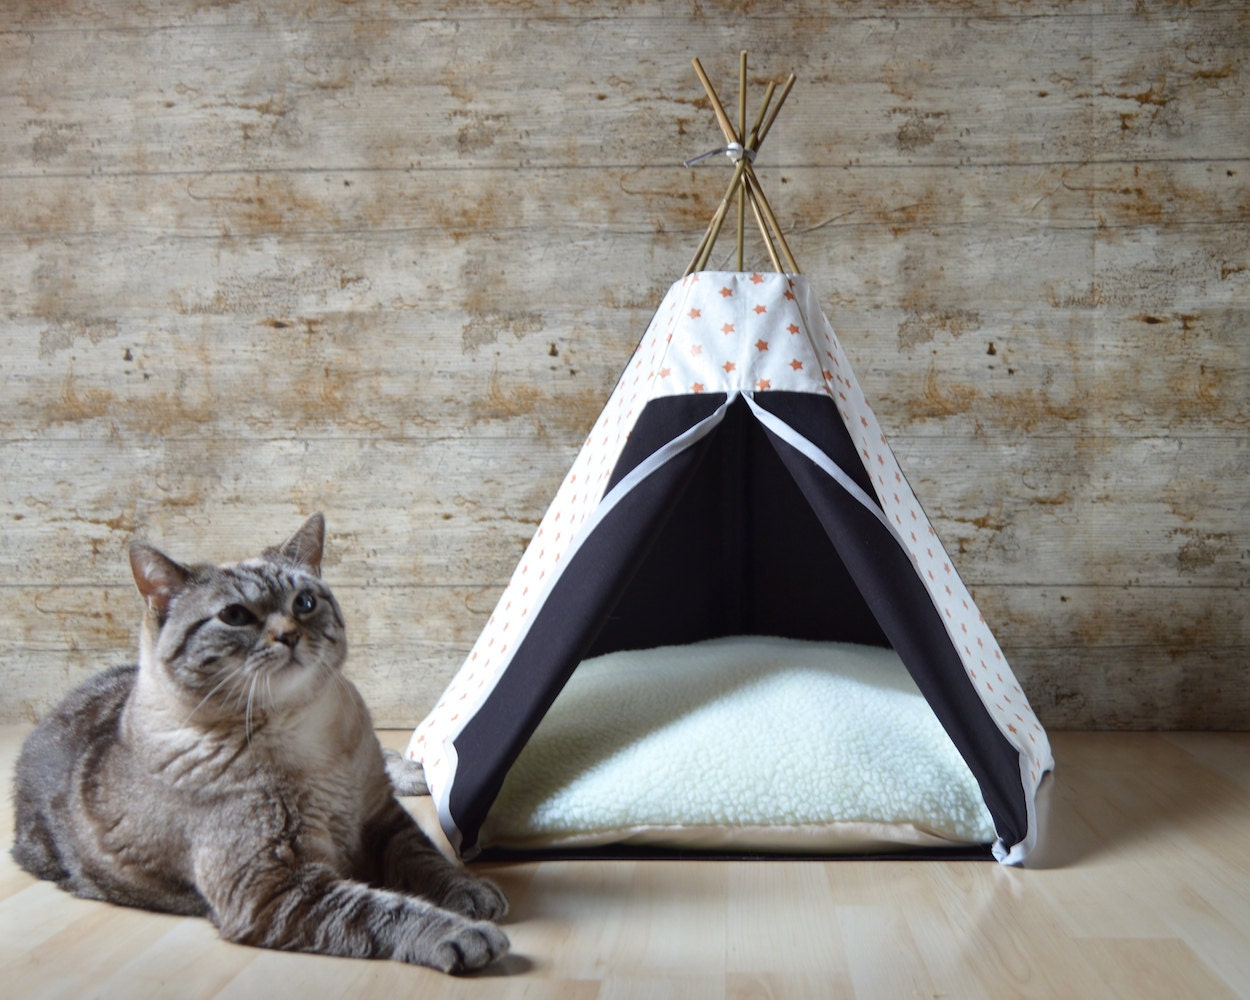 lit chat tipi chat tipi chien avec coussin cuivr et noir. Black Bedroom Furniture Sets. Home Design Ideas